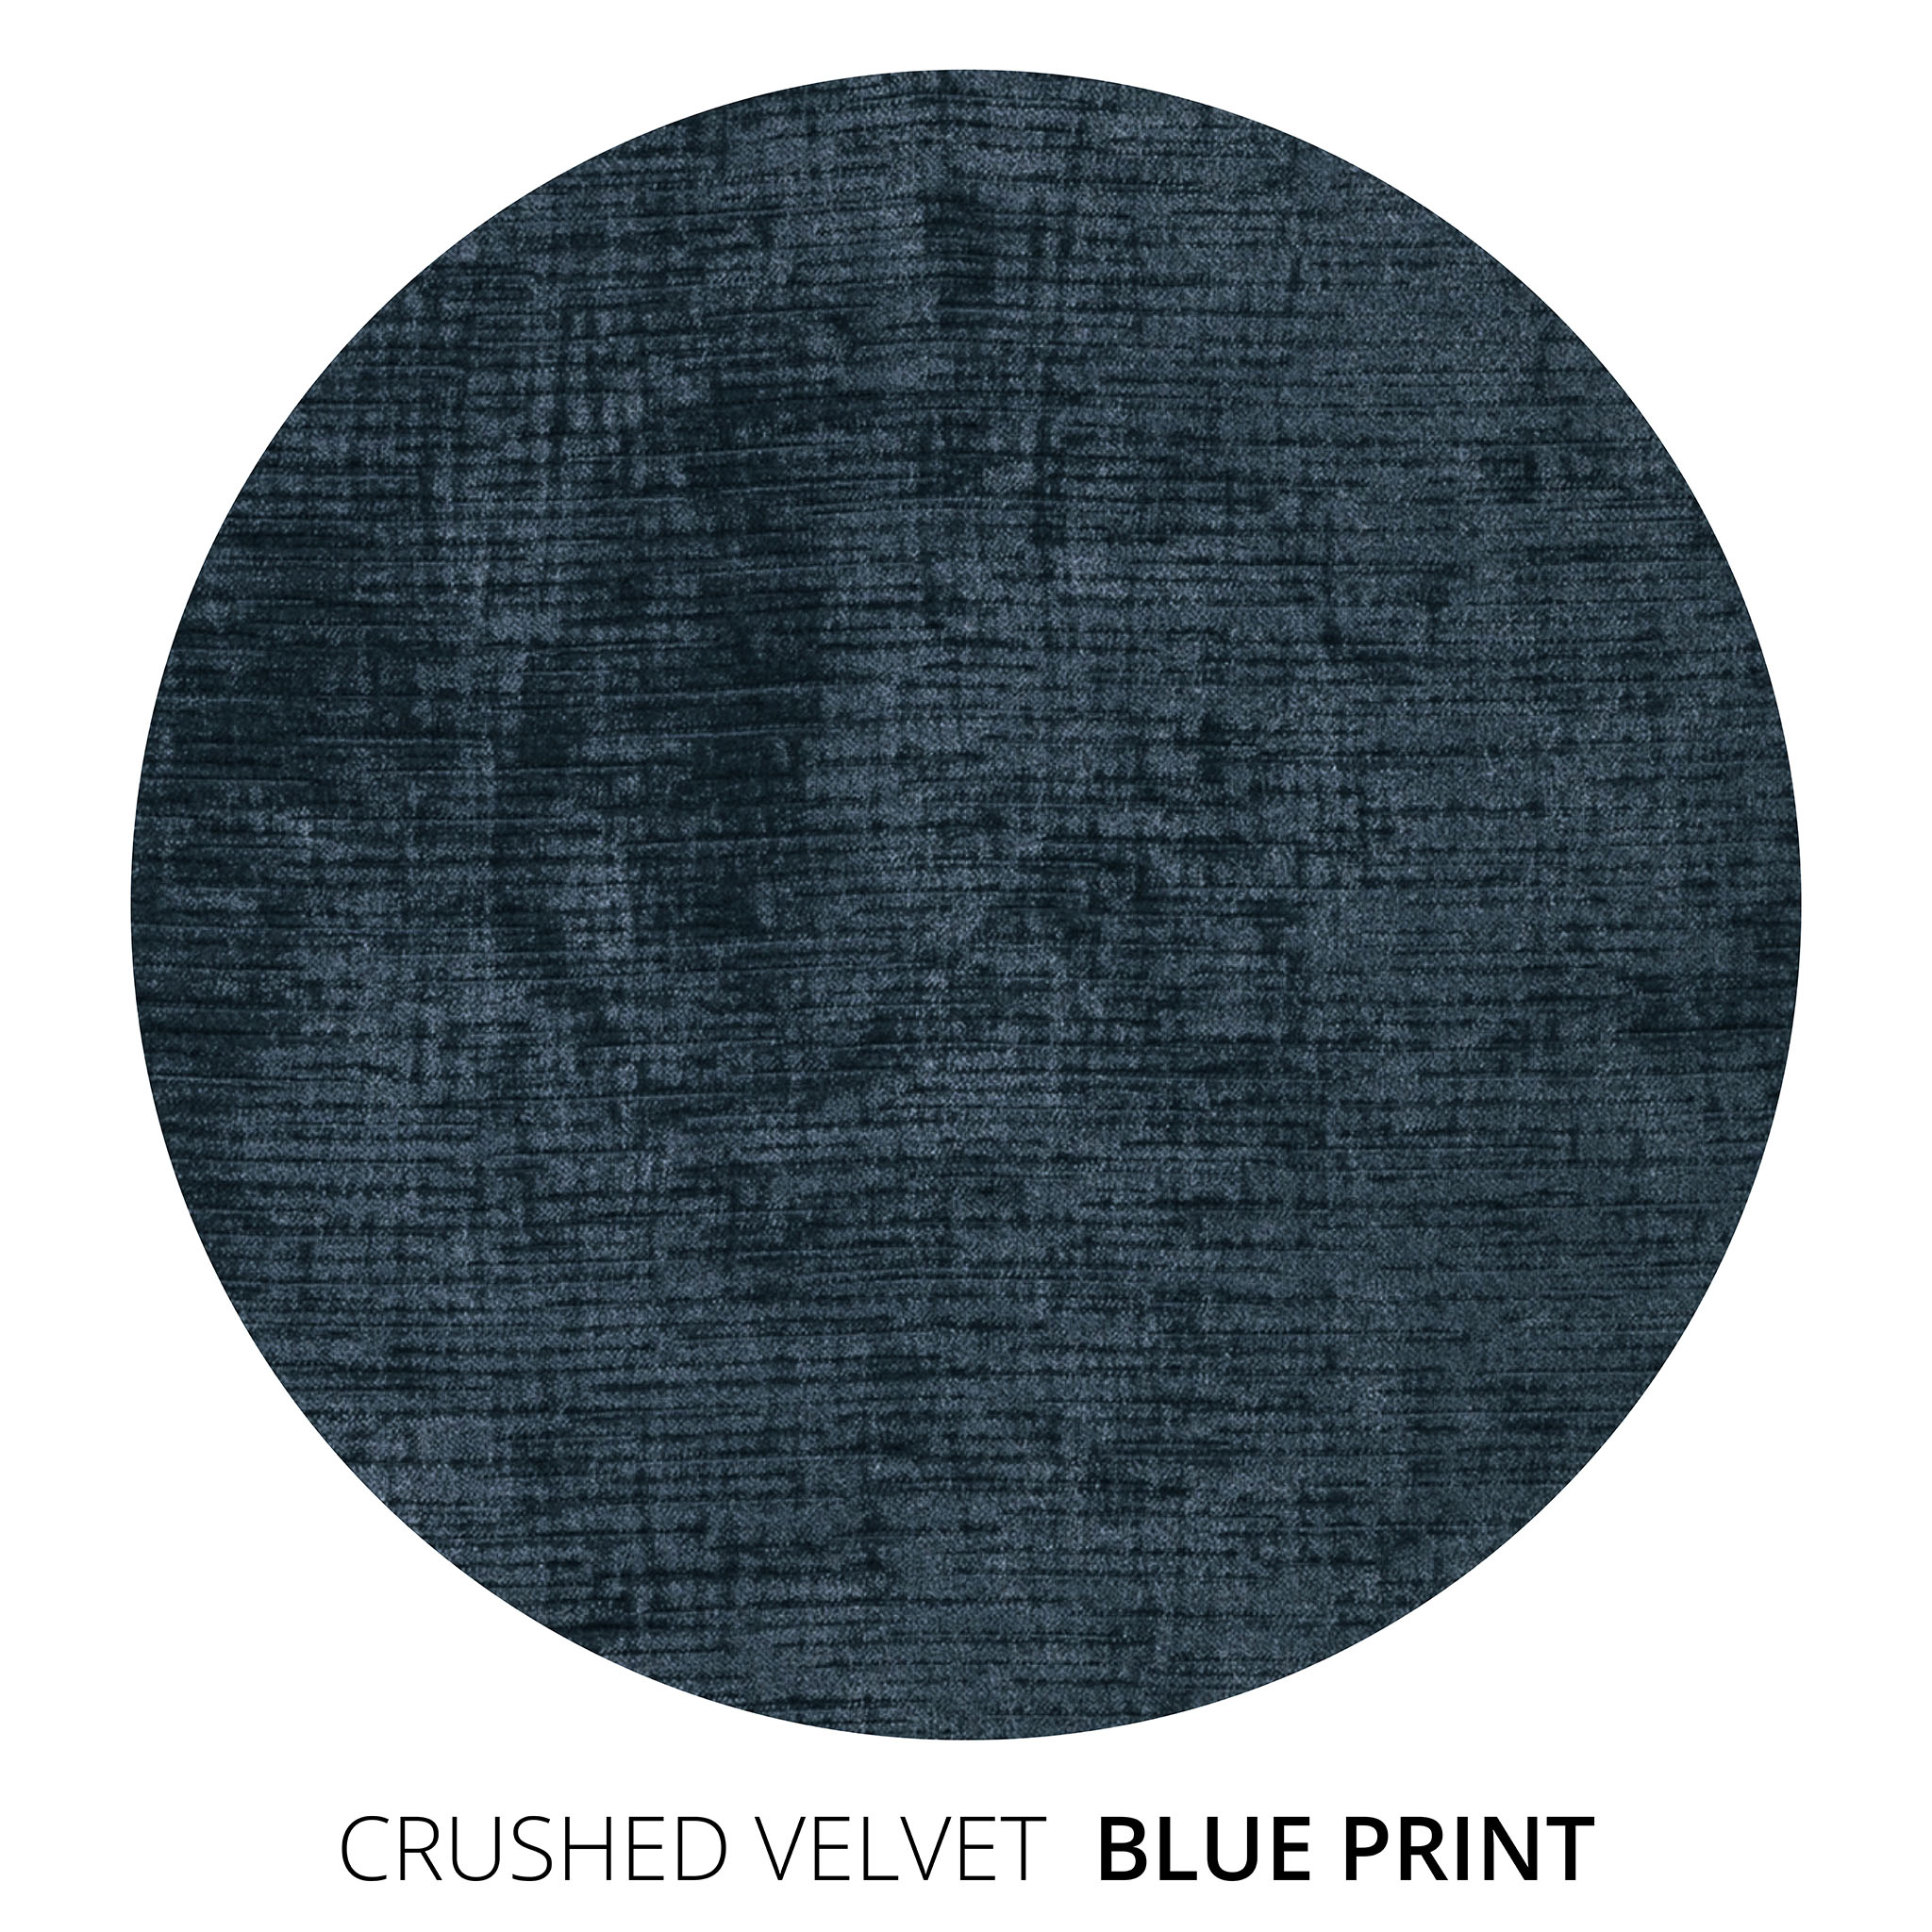 Blue Print Crushed Velvet Swatch